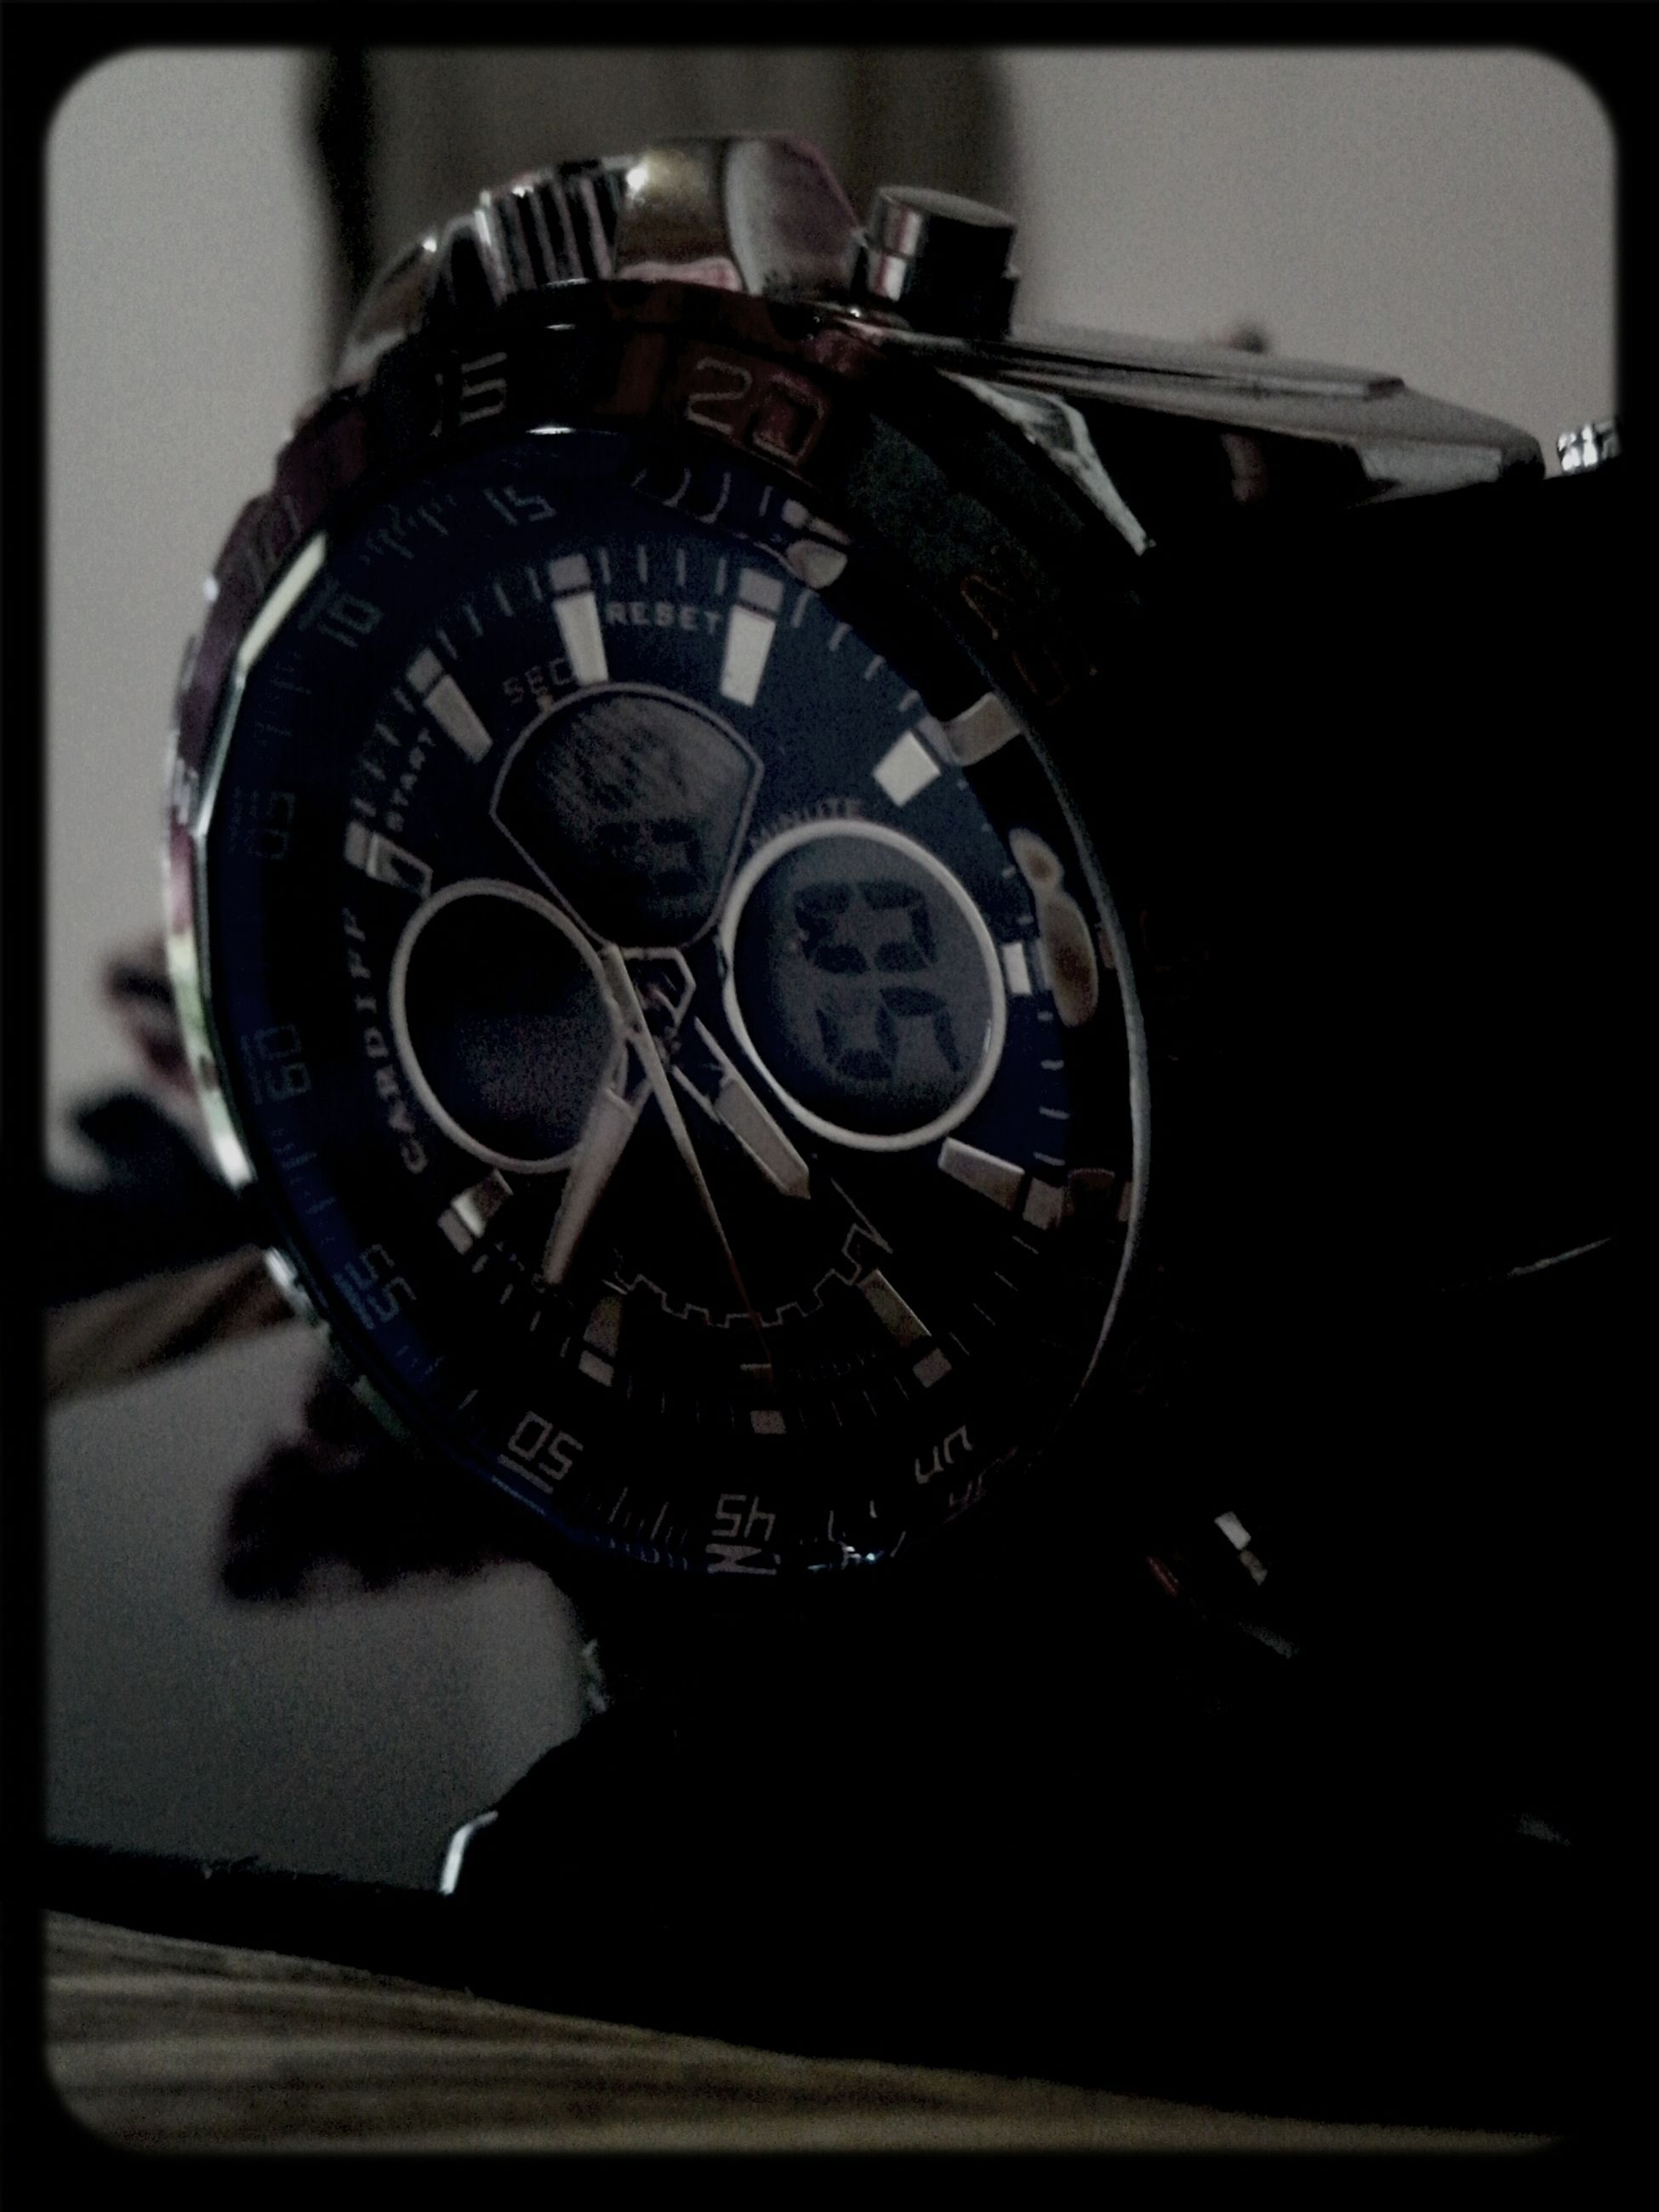 transfer print, auto post production filter, indoors, close-up, old-fashioned, retro styled, clock, technology, metal, time, antique, single object, focus on foreground, part of, no people, circle, old, wheel, number, photography themes